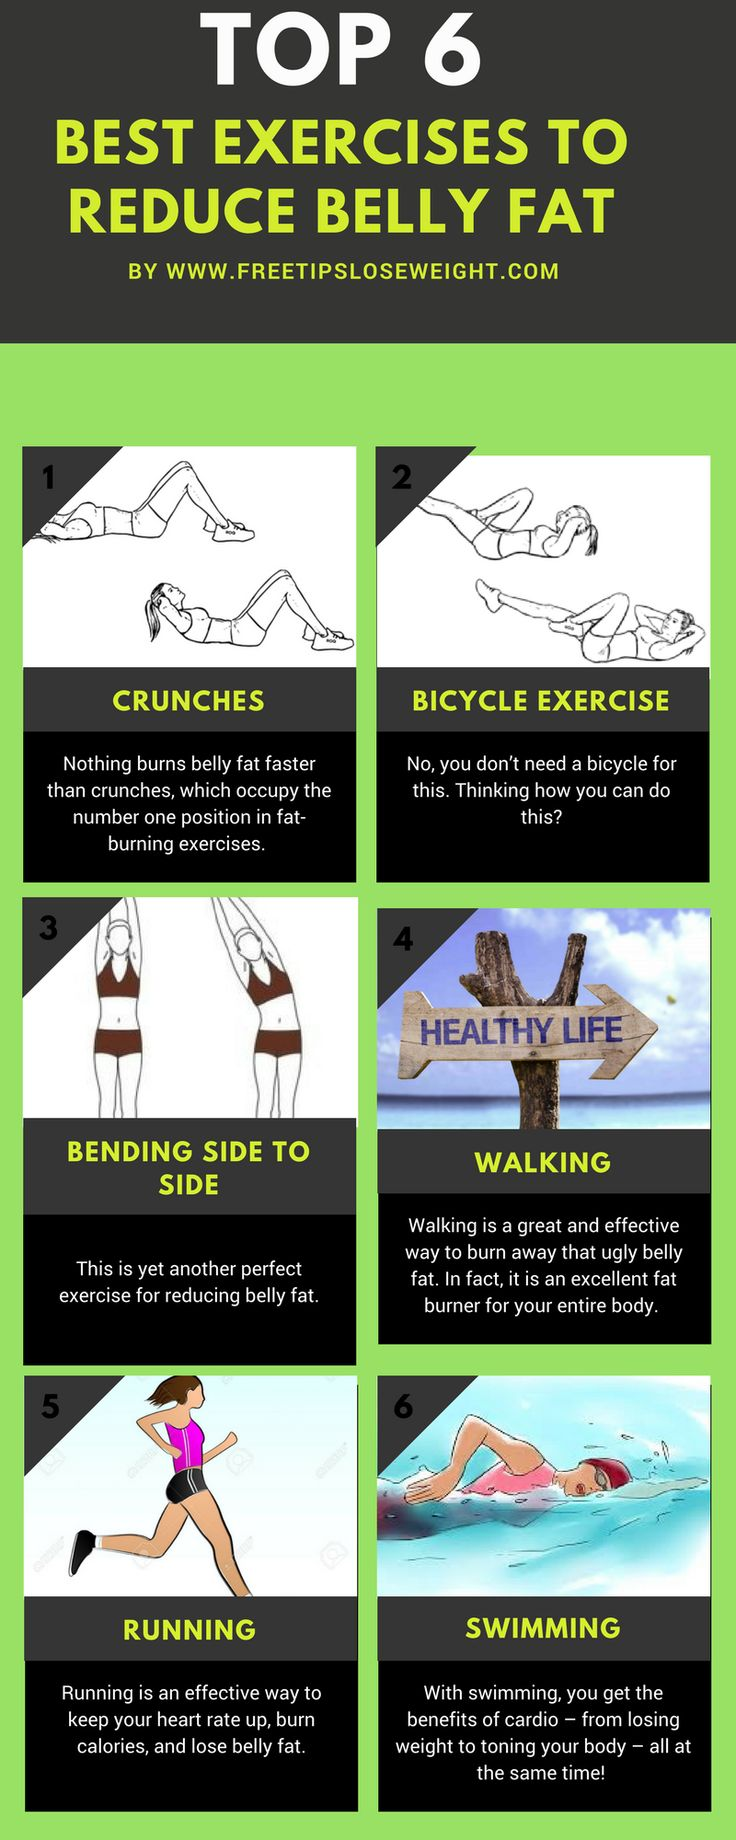 6 Easy Exercises To Reduce Belly Fat  #weightloss #health #healthcare #healthylifestyle #healthyliving #weightlossjourney